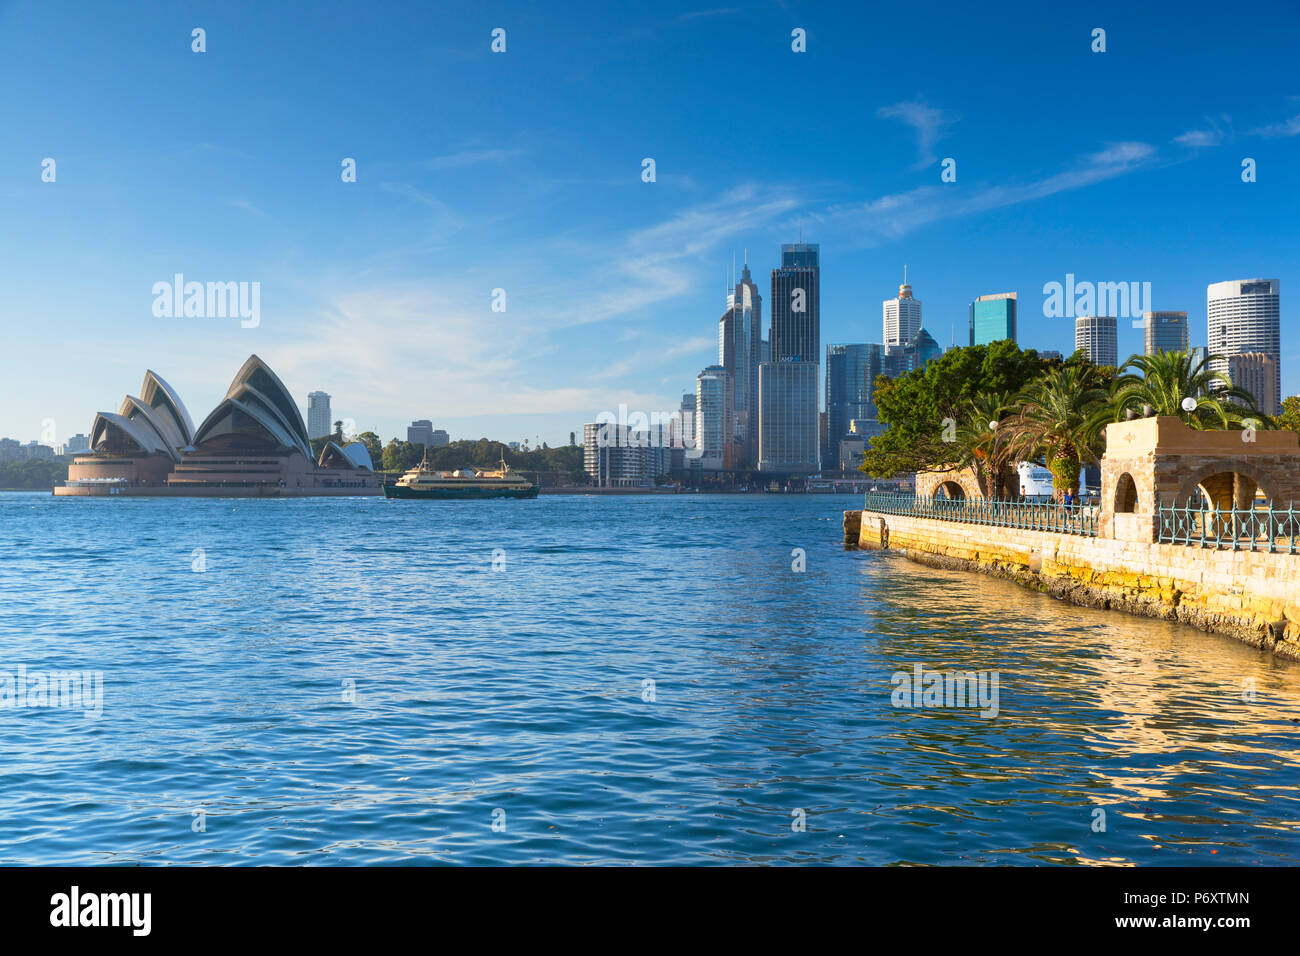 Sydney Opera House and city skyline, Sydney, New South Wales, Australia - Stock Image